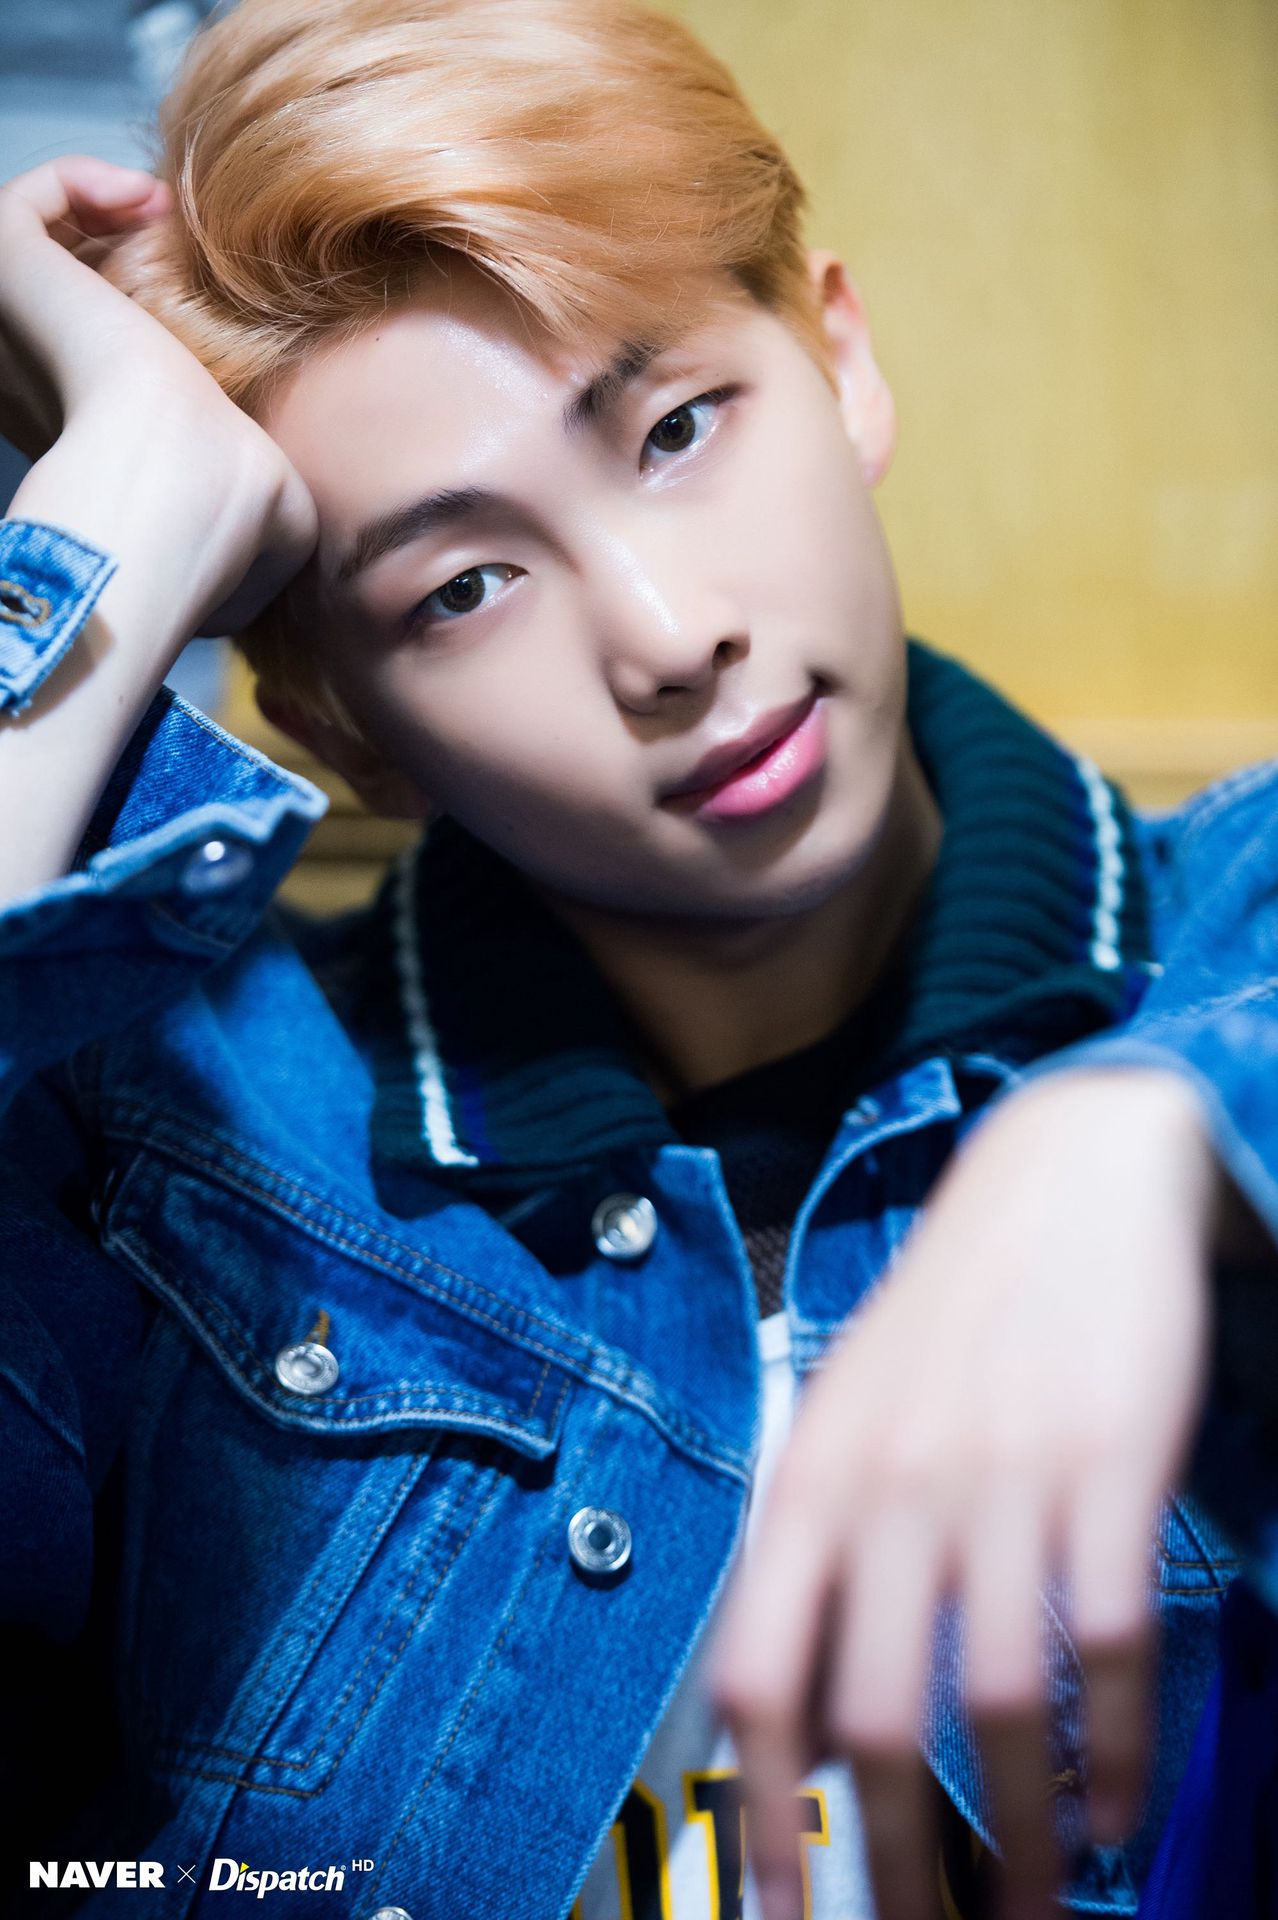 Exo/BTS x Reader [REOPENED] - RM x Reader(FLUFF): Get Your